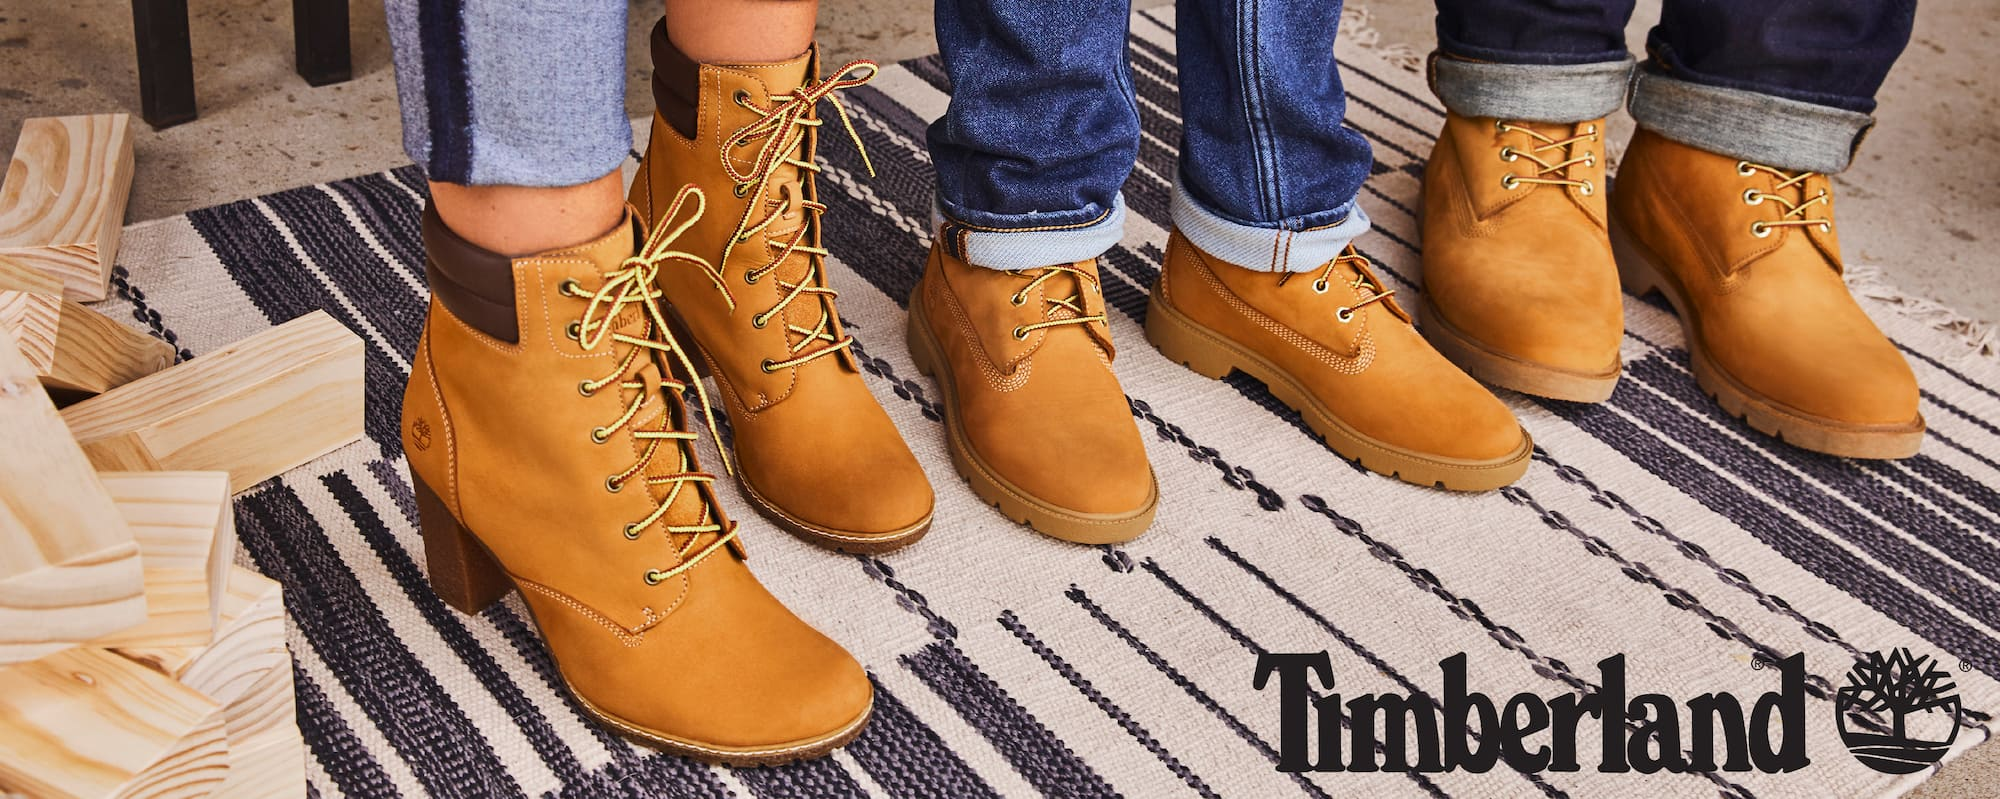 lecho Temporizador Grasa  Timberland Boots | Shoes | Work & Hiking Boots | DSW | DSW